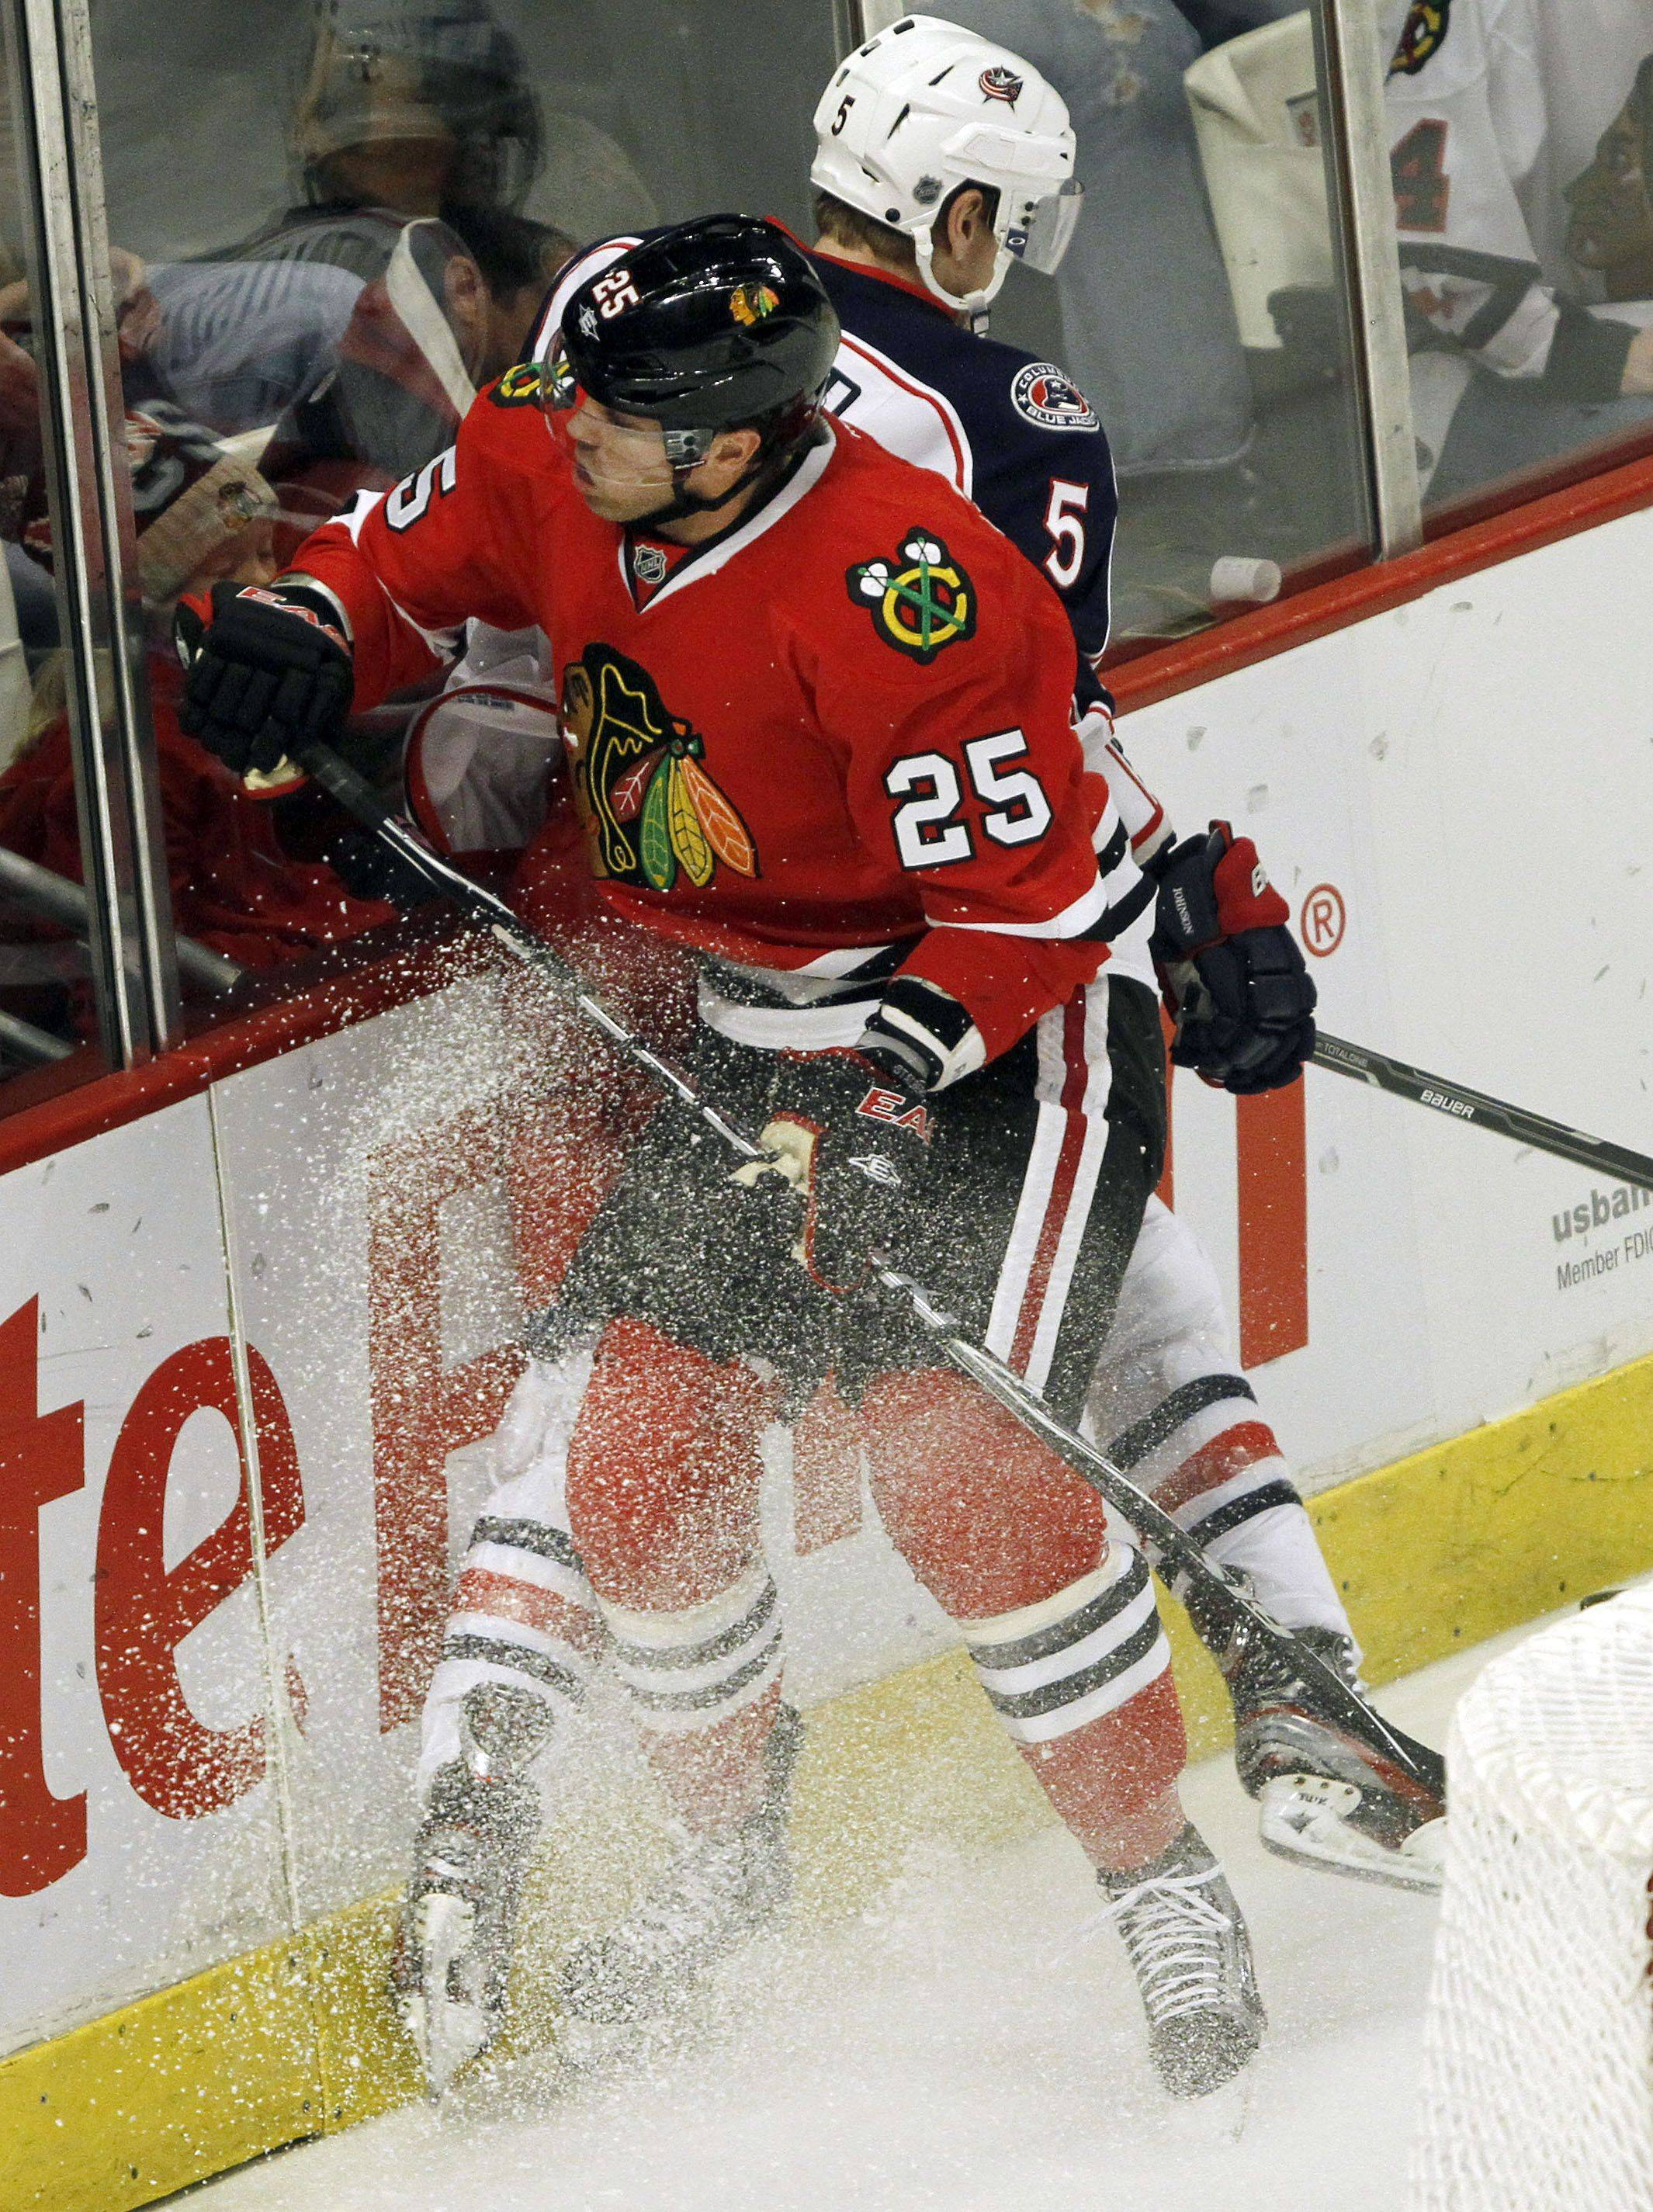 Chicago Blackhawks left wing Viktor Stalberg puts a hit on Columbus Blue Jackets defenseman Aaron Johnson during their game Monday night at the United Center in Chicago.